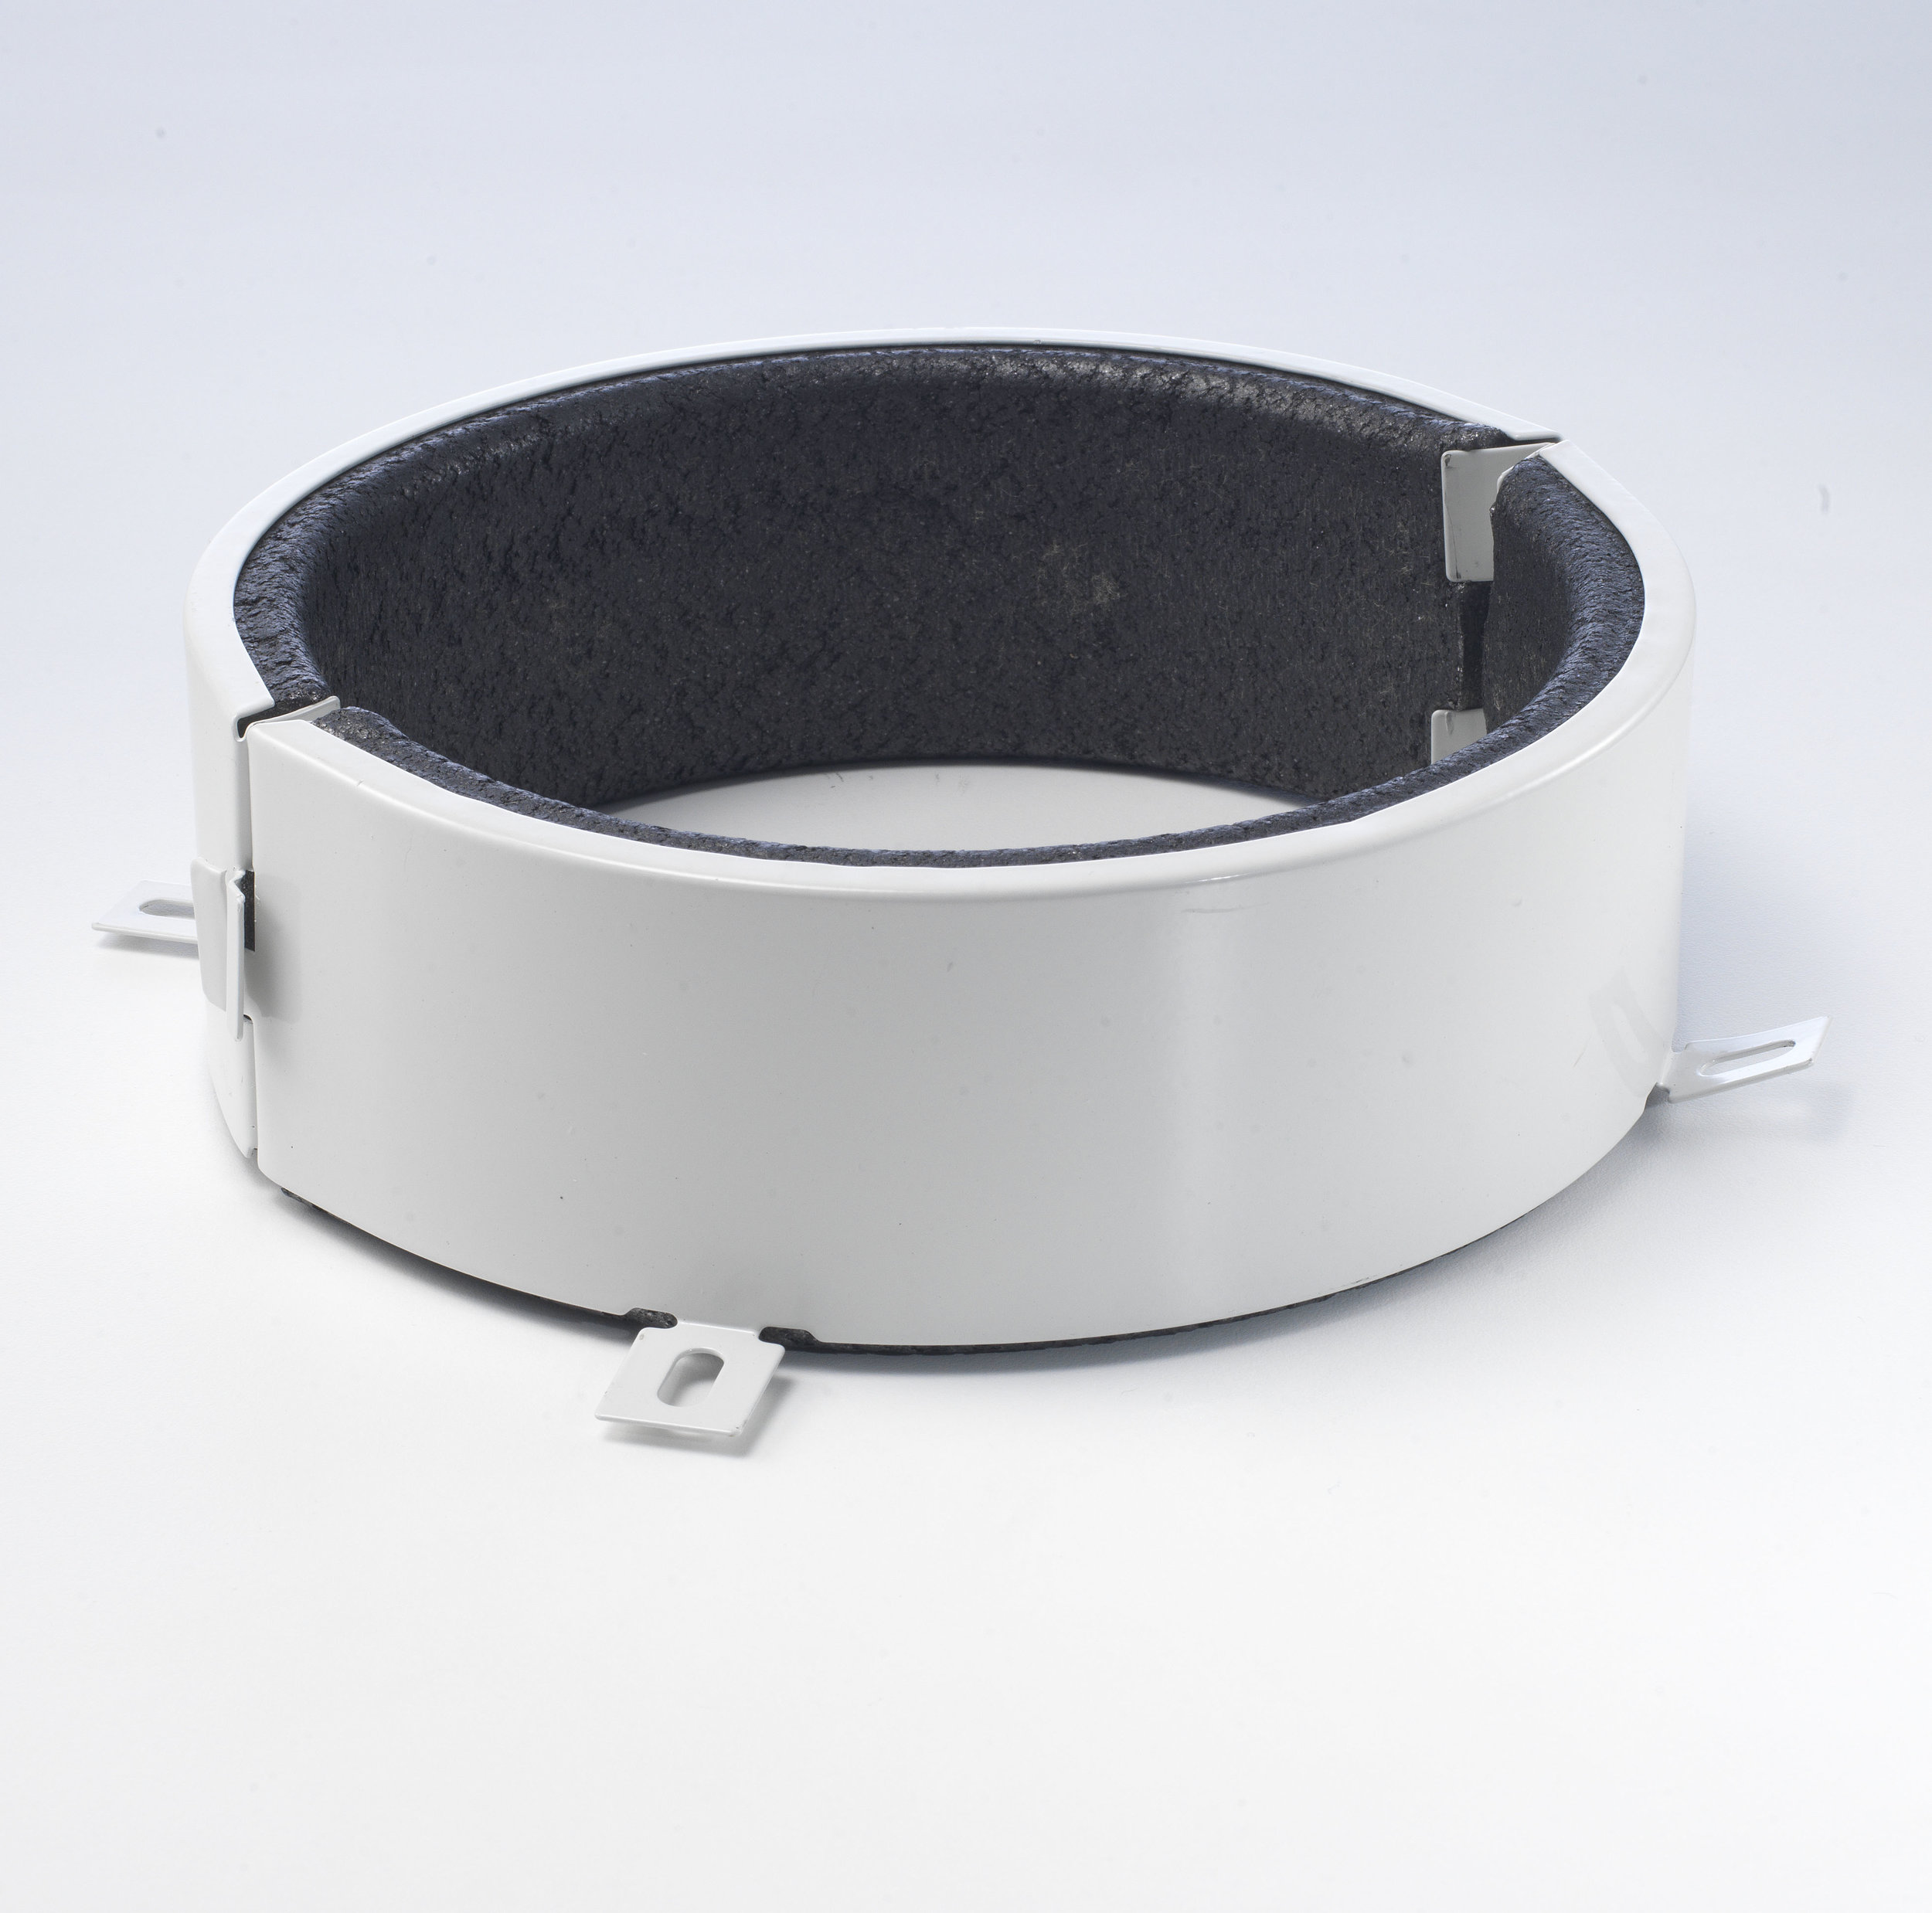 FR Collar_white 160mm_1073.jpg